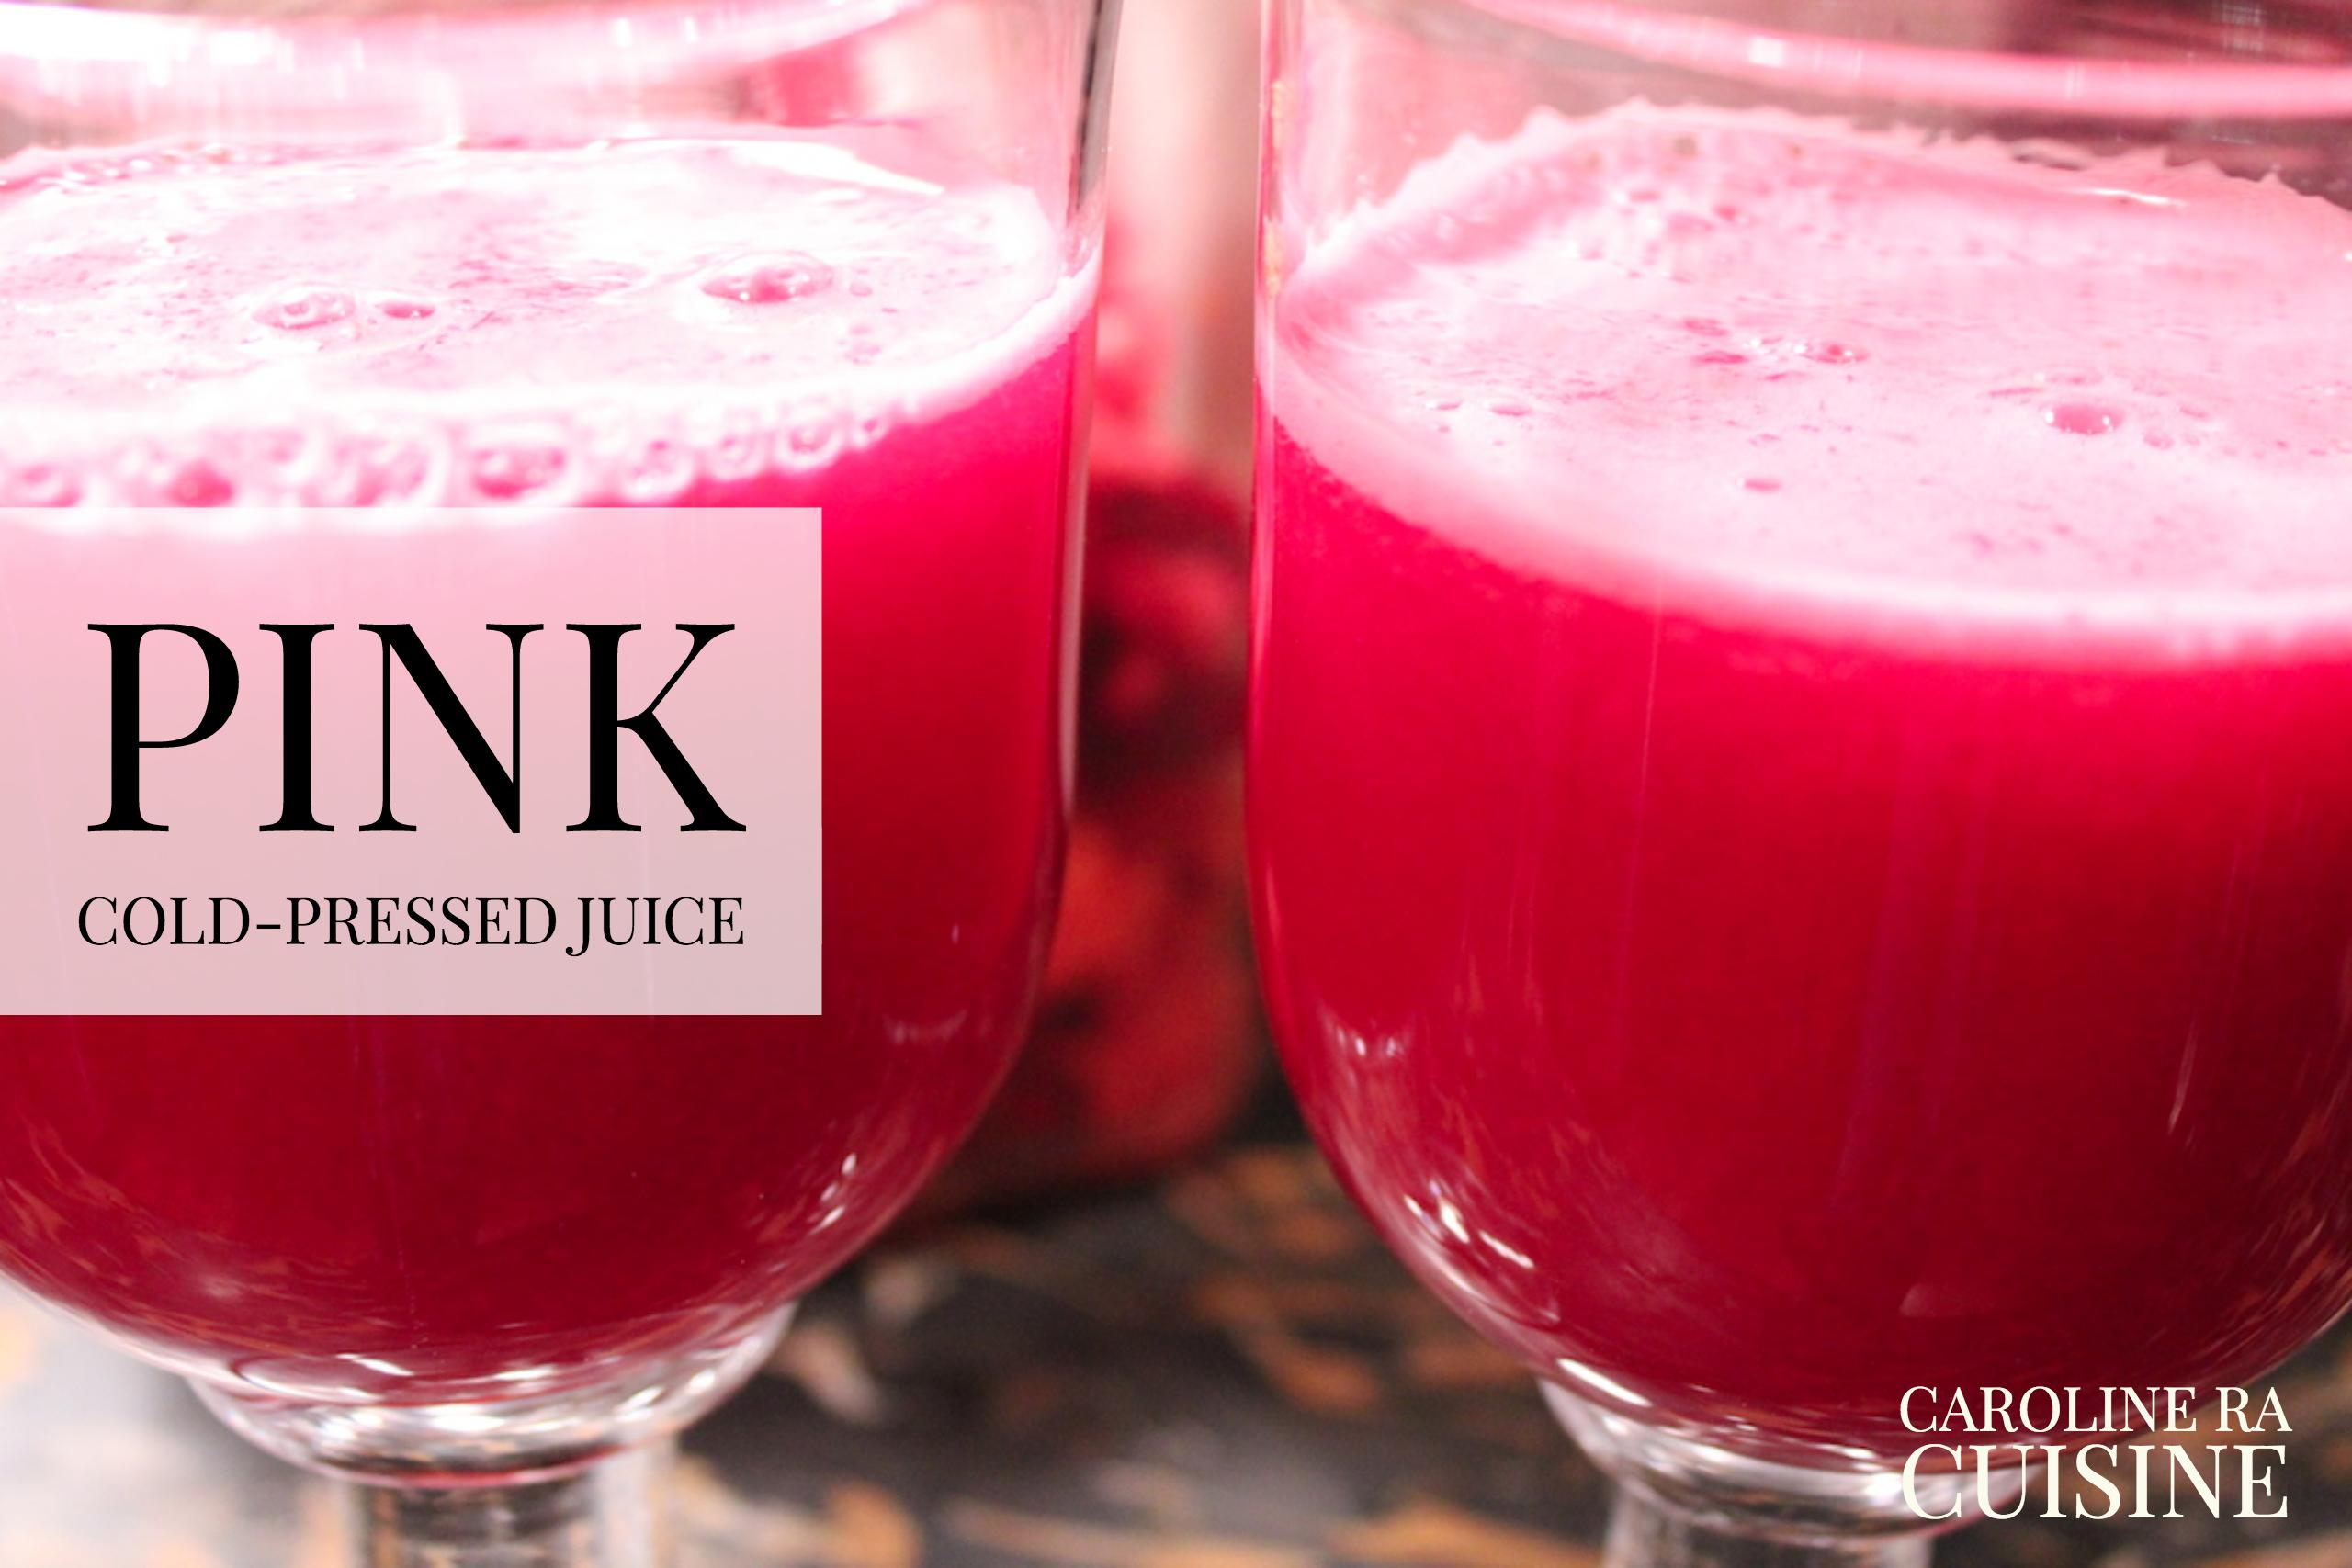 Two Glasses of Pink Cold-Pressed Juice